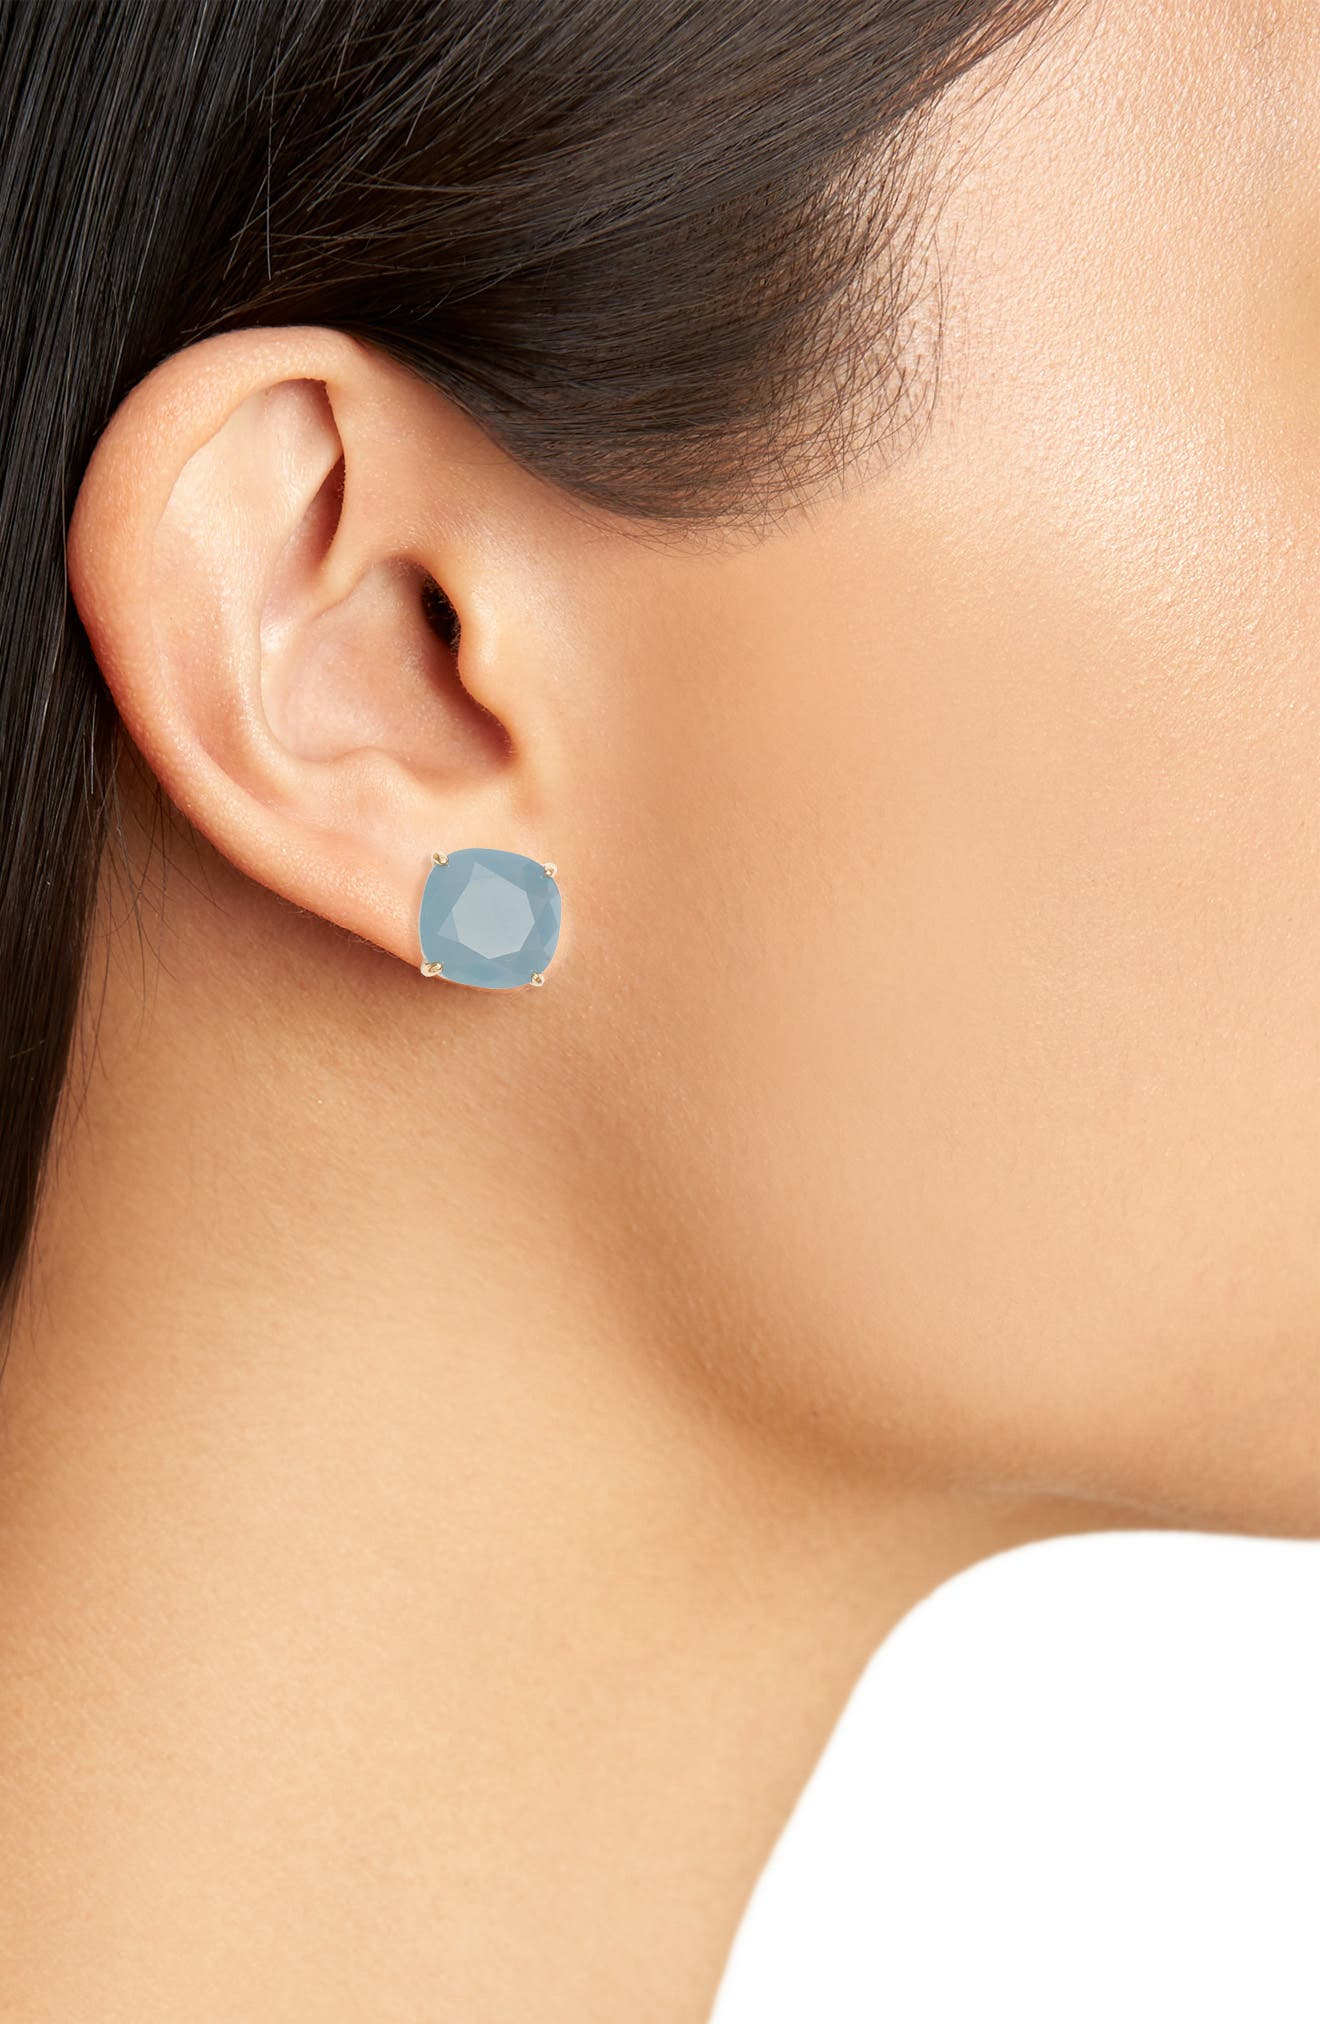 KATE SPADE NEW YORK, small square stud earrings, Alternate thumbnail 2, color, SERENE BLUE